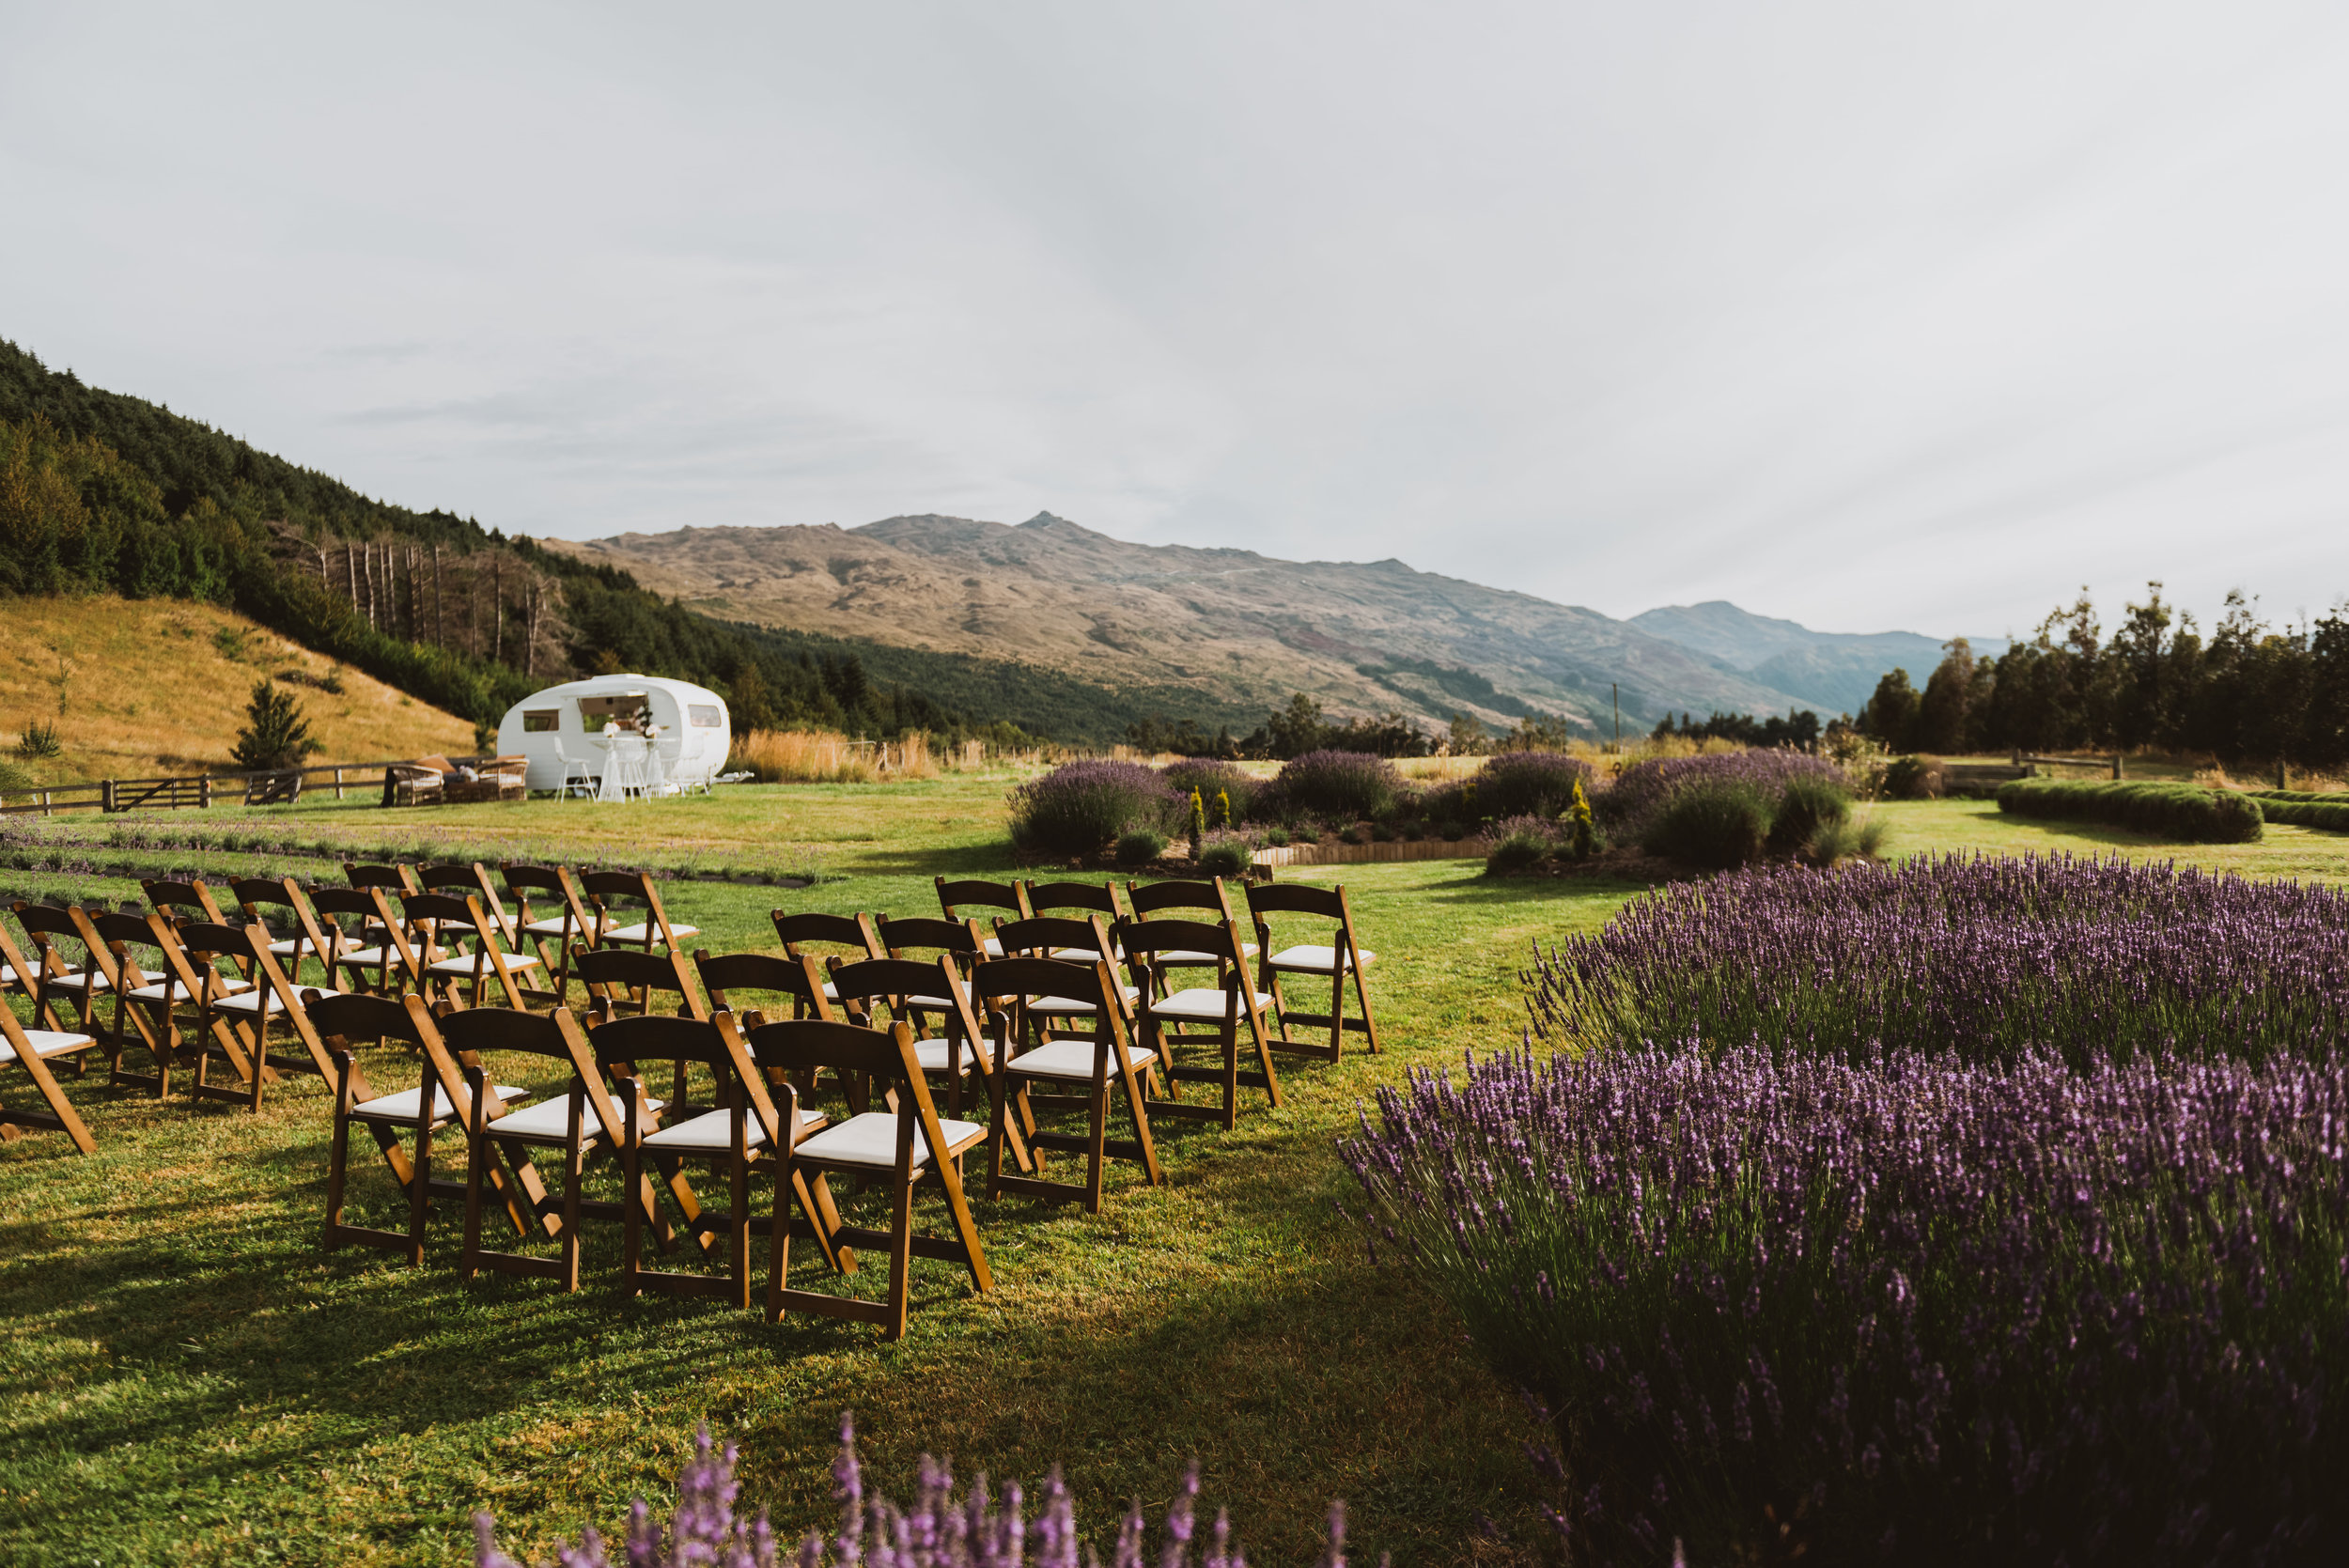 Wedding Ceremonies - Book your special occasion at our Organic Lavender Farm, set amongst the mountainous topography of the Southern Lakes region.Click here for more information.